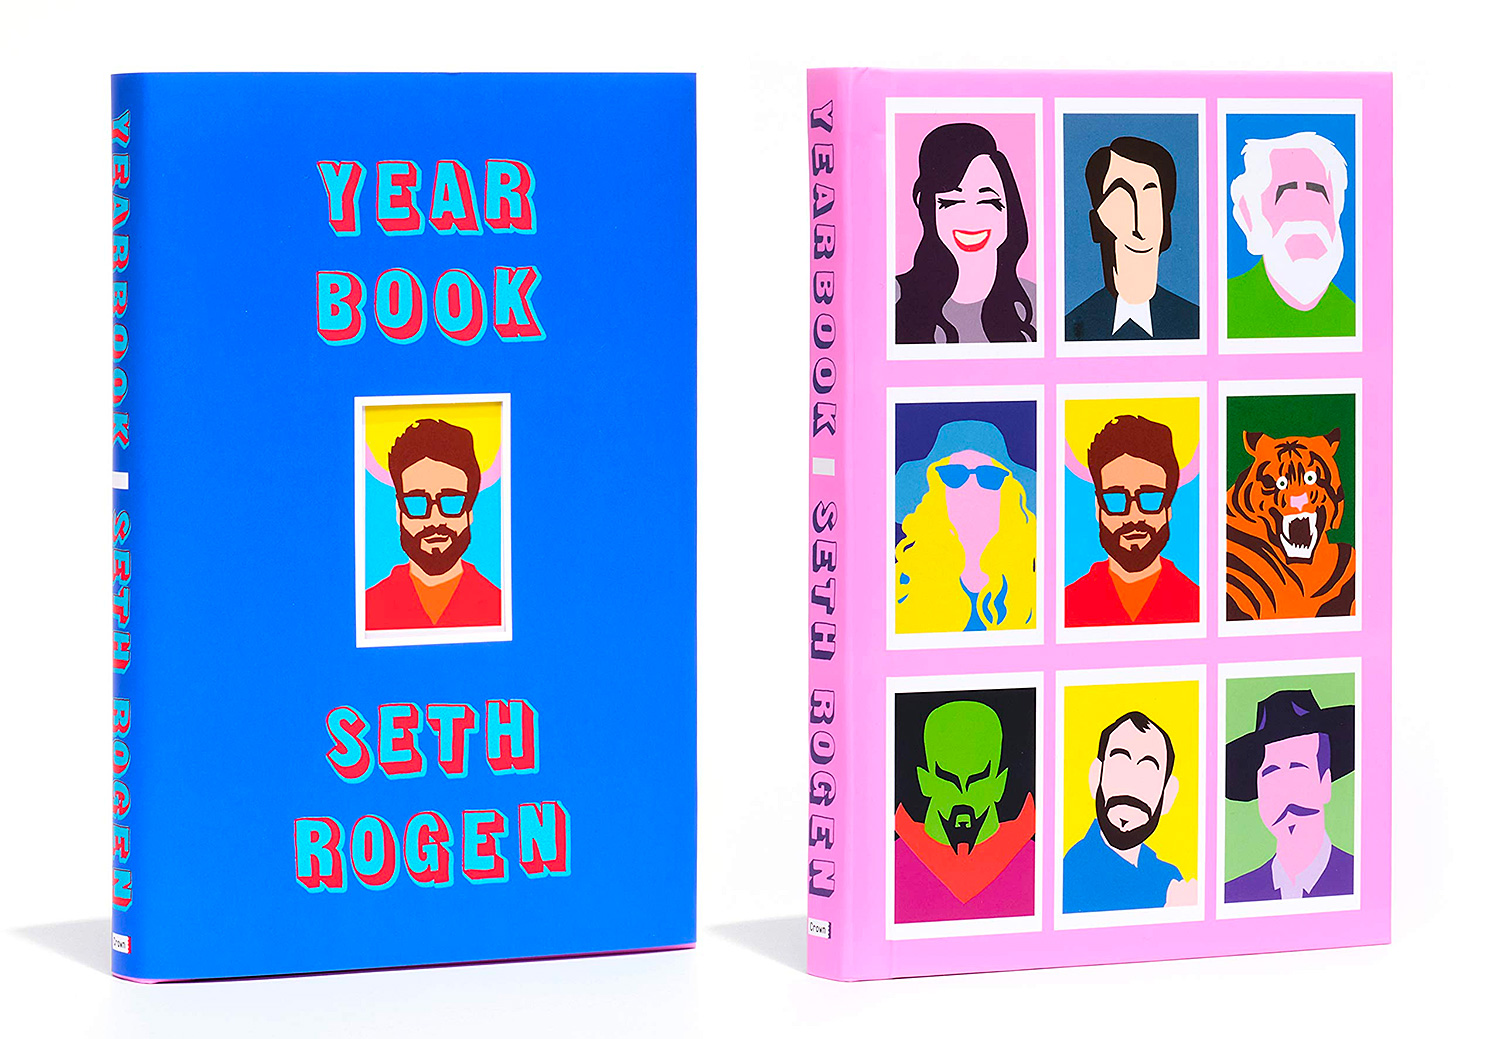 Seth Rogen Shares Stoney Stories in <i>Yearbook</i> at werd.com